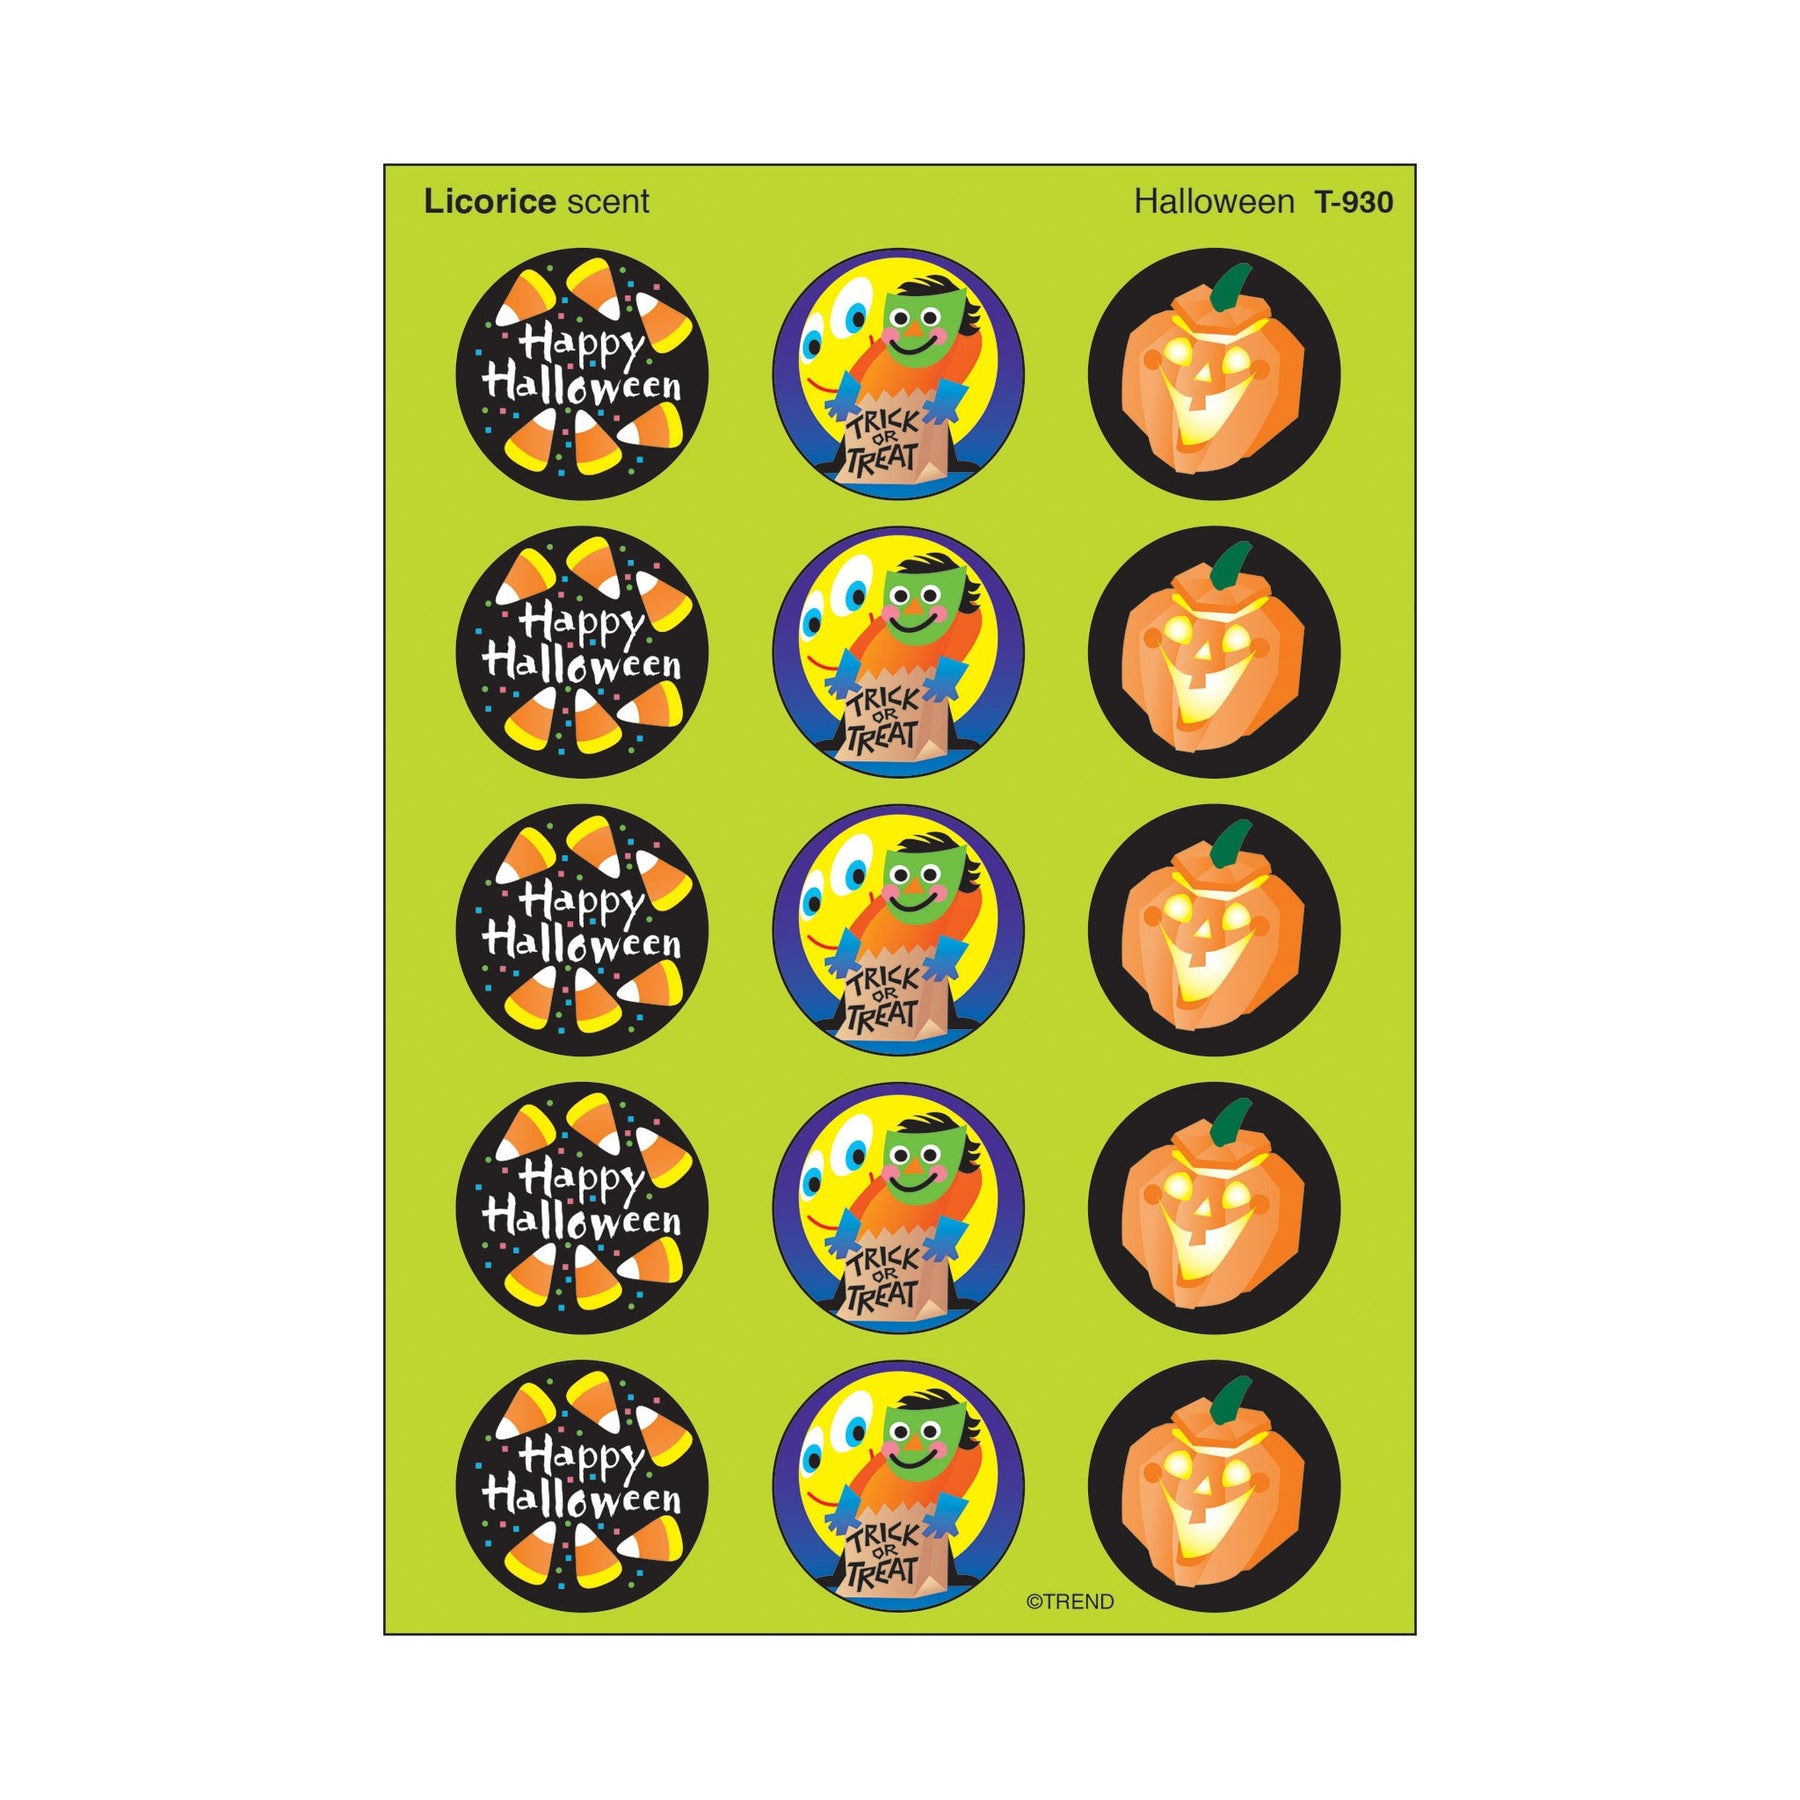 Trend T930 Scratch and Sniff Stickers Halloween (Licorice)